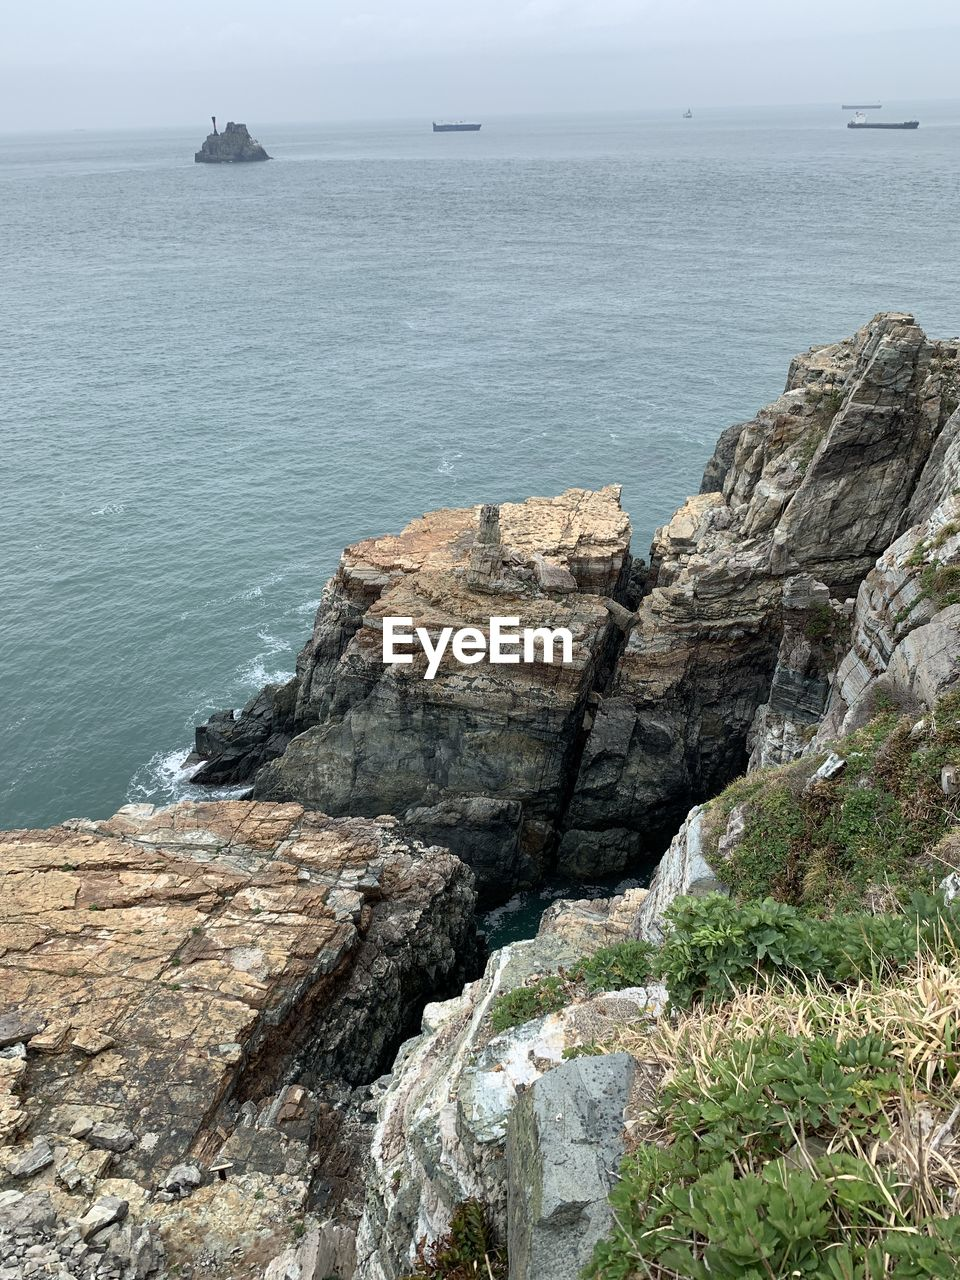 sea, rock, beauty in nature, rock - object, solid, scenics - nature, water, day, rock formation, sky, tranquil scene, nature, horizon over water, tranquility, horizon, no people, cliff, land, outdoors, rocky coastline, formation